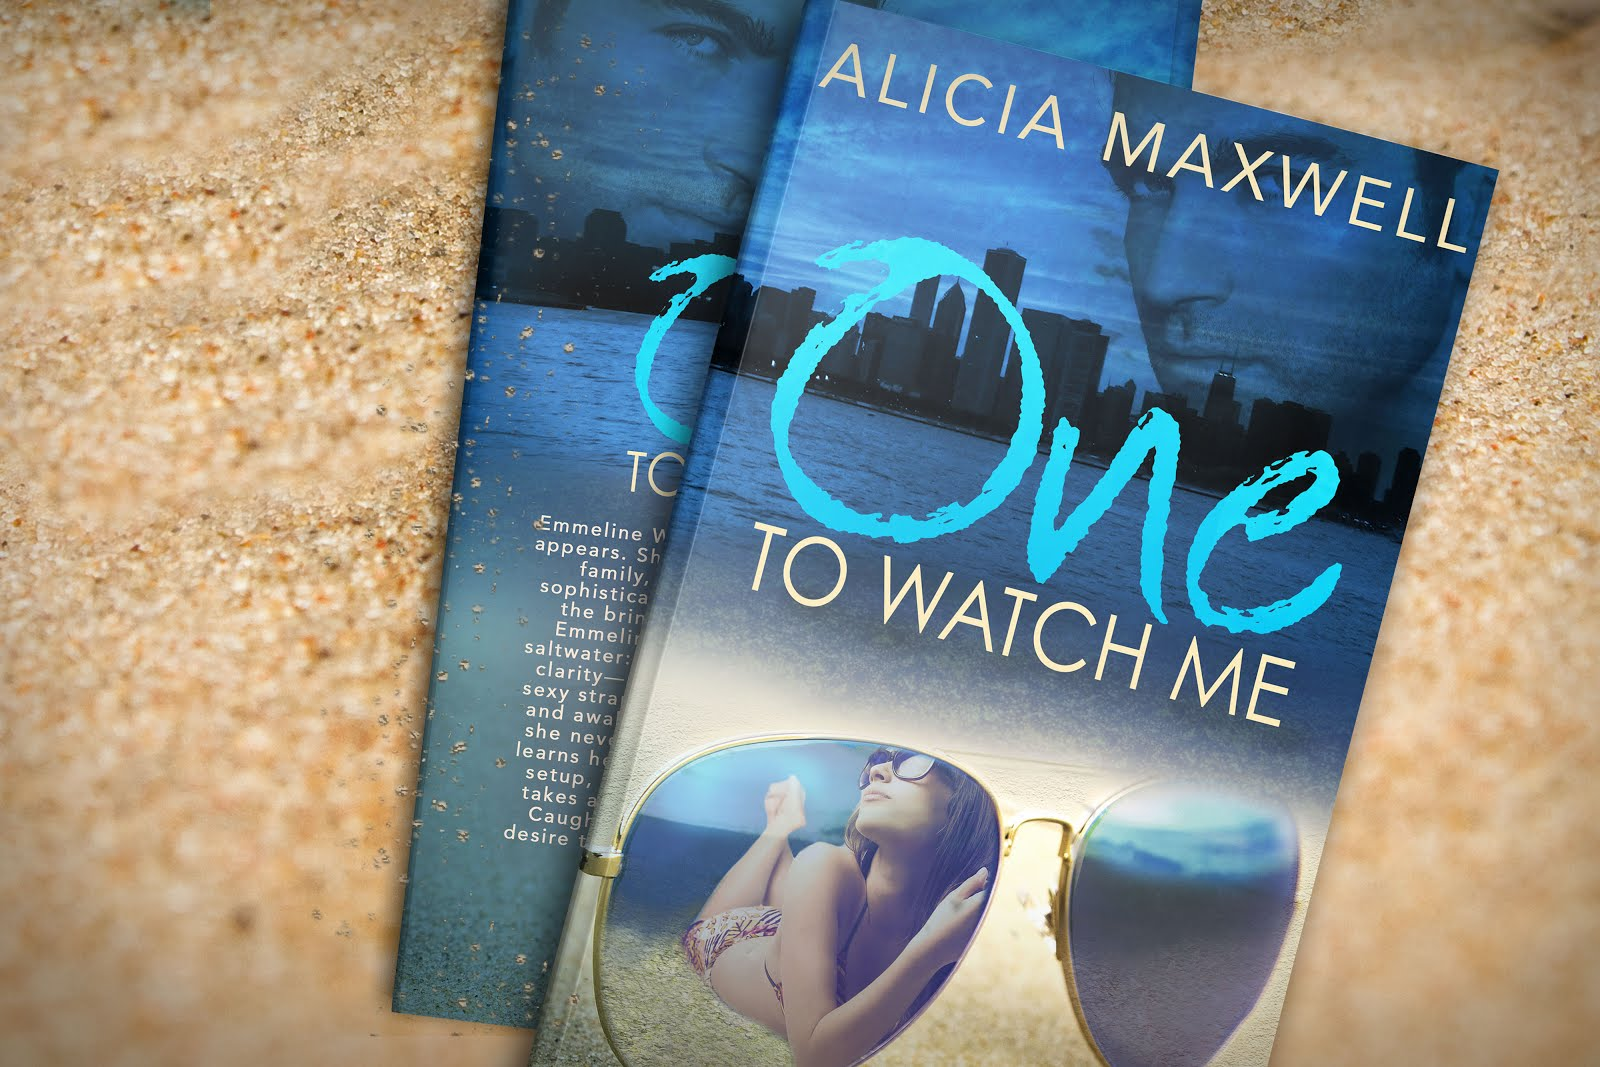 One To Watch Me Blog Tour